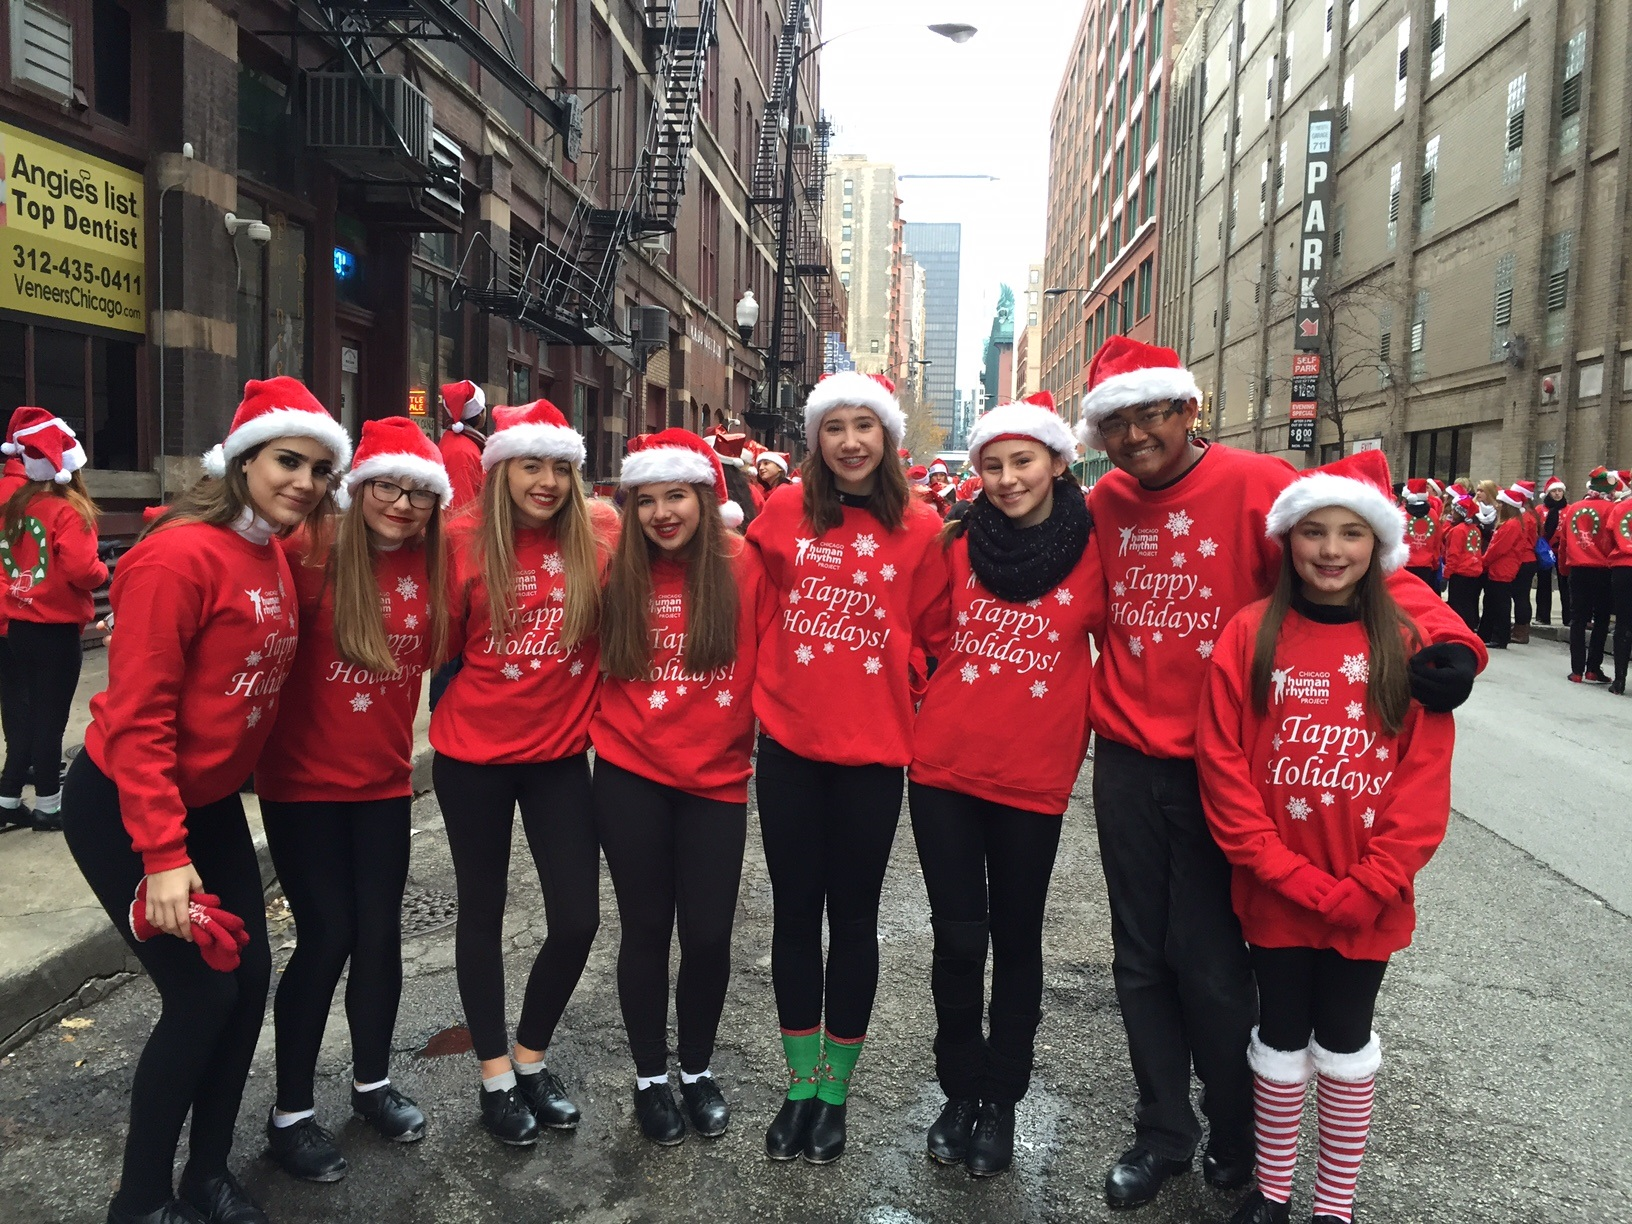 FootworkRhythmCollective-Thanksgiving Parade 2016.jpg